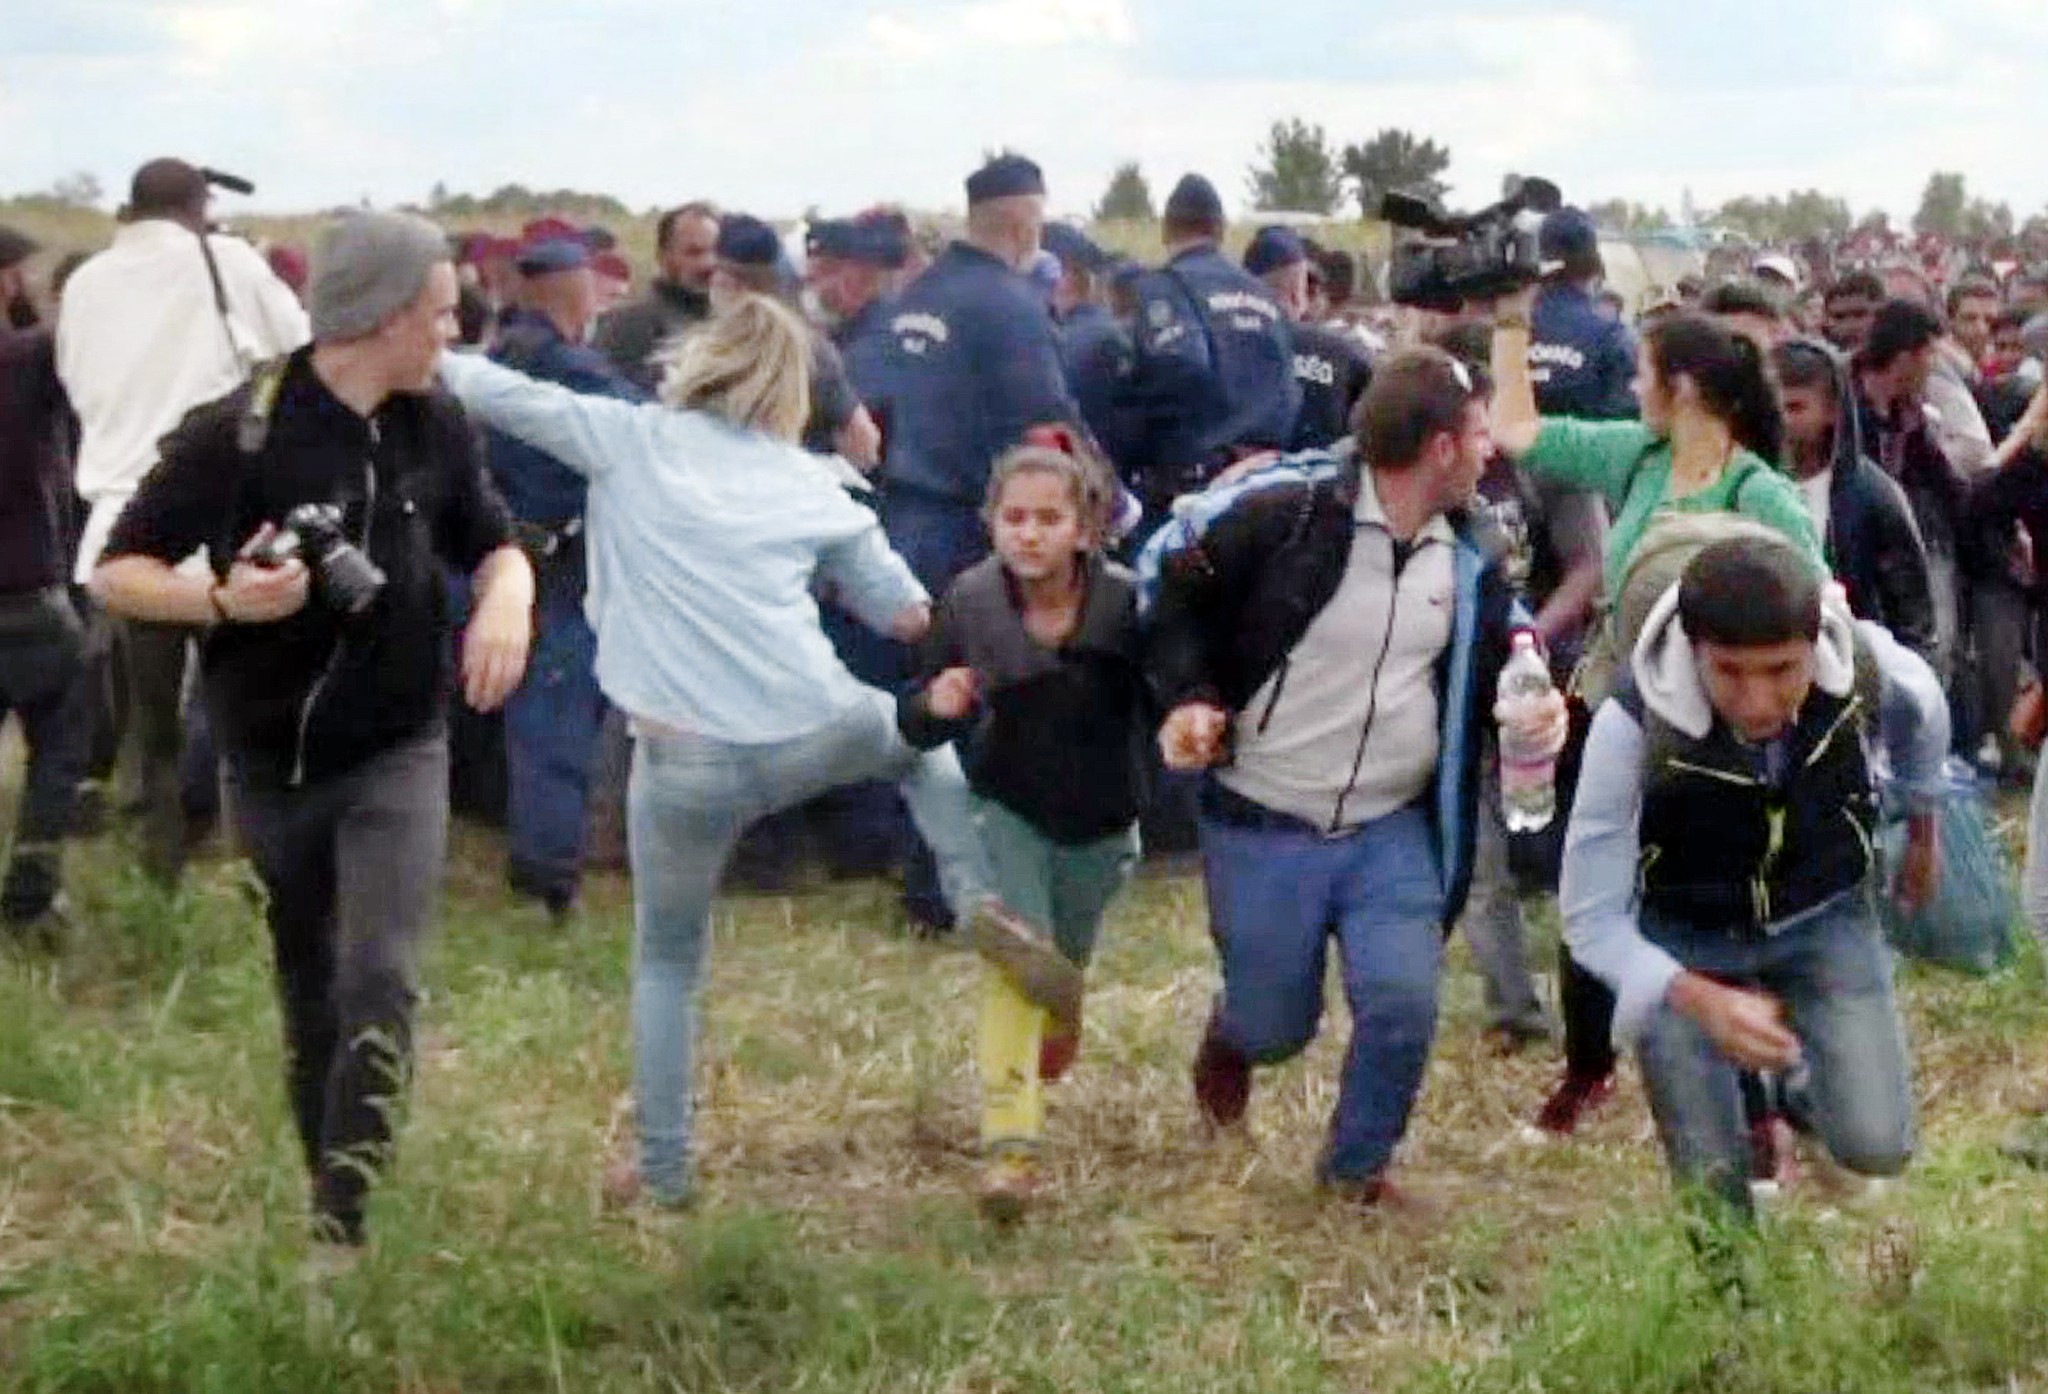 Top Court Clears Camerawoman who Kicked Migrants of Disorderly Conduct Charges post's picture